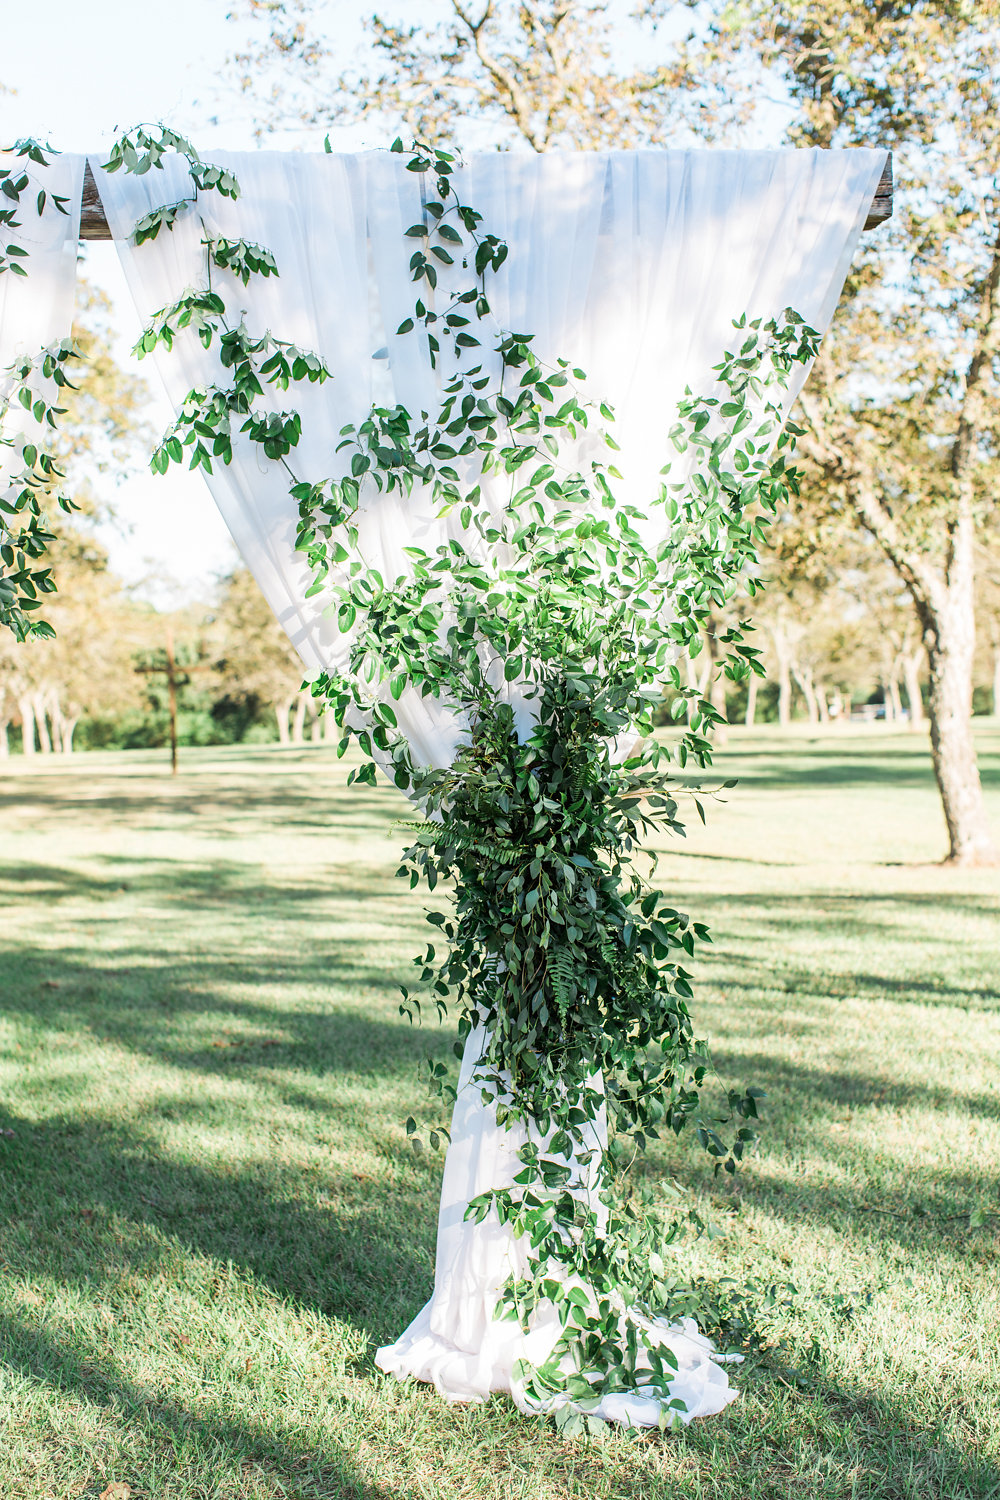 Ceremony site with draping covered in greenery.